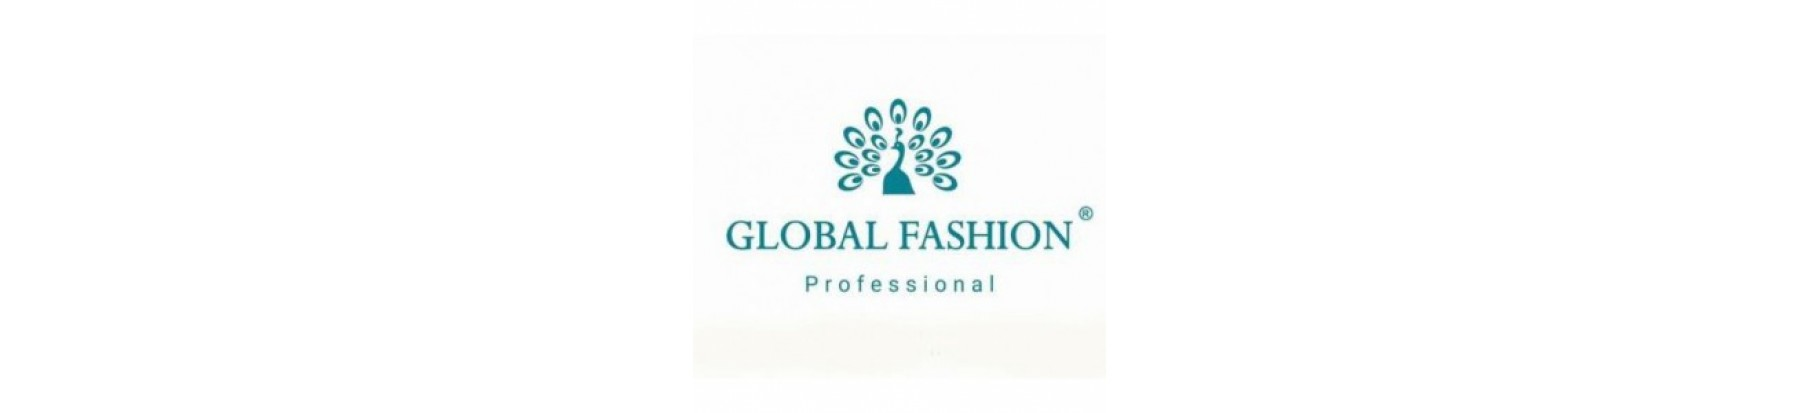 GLOBAL FASHION